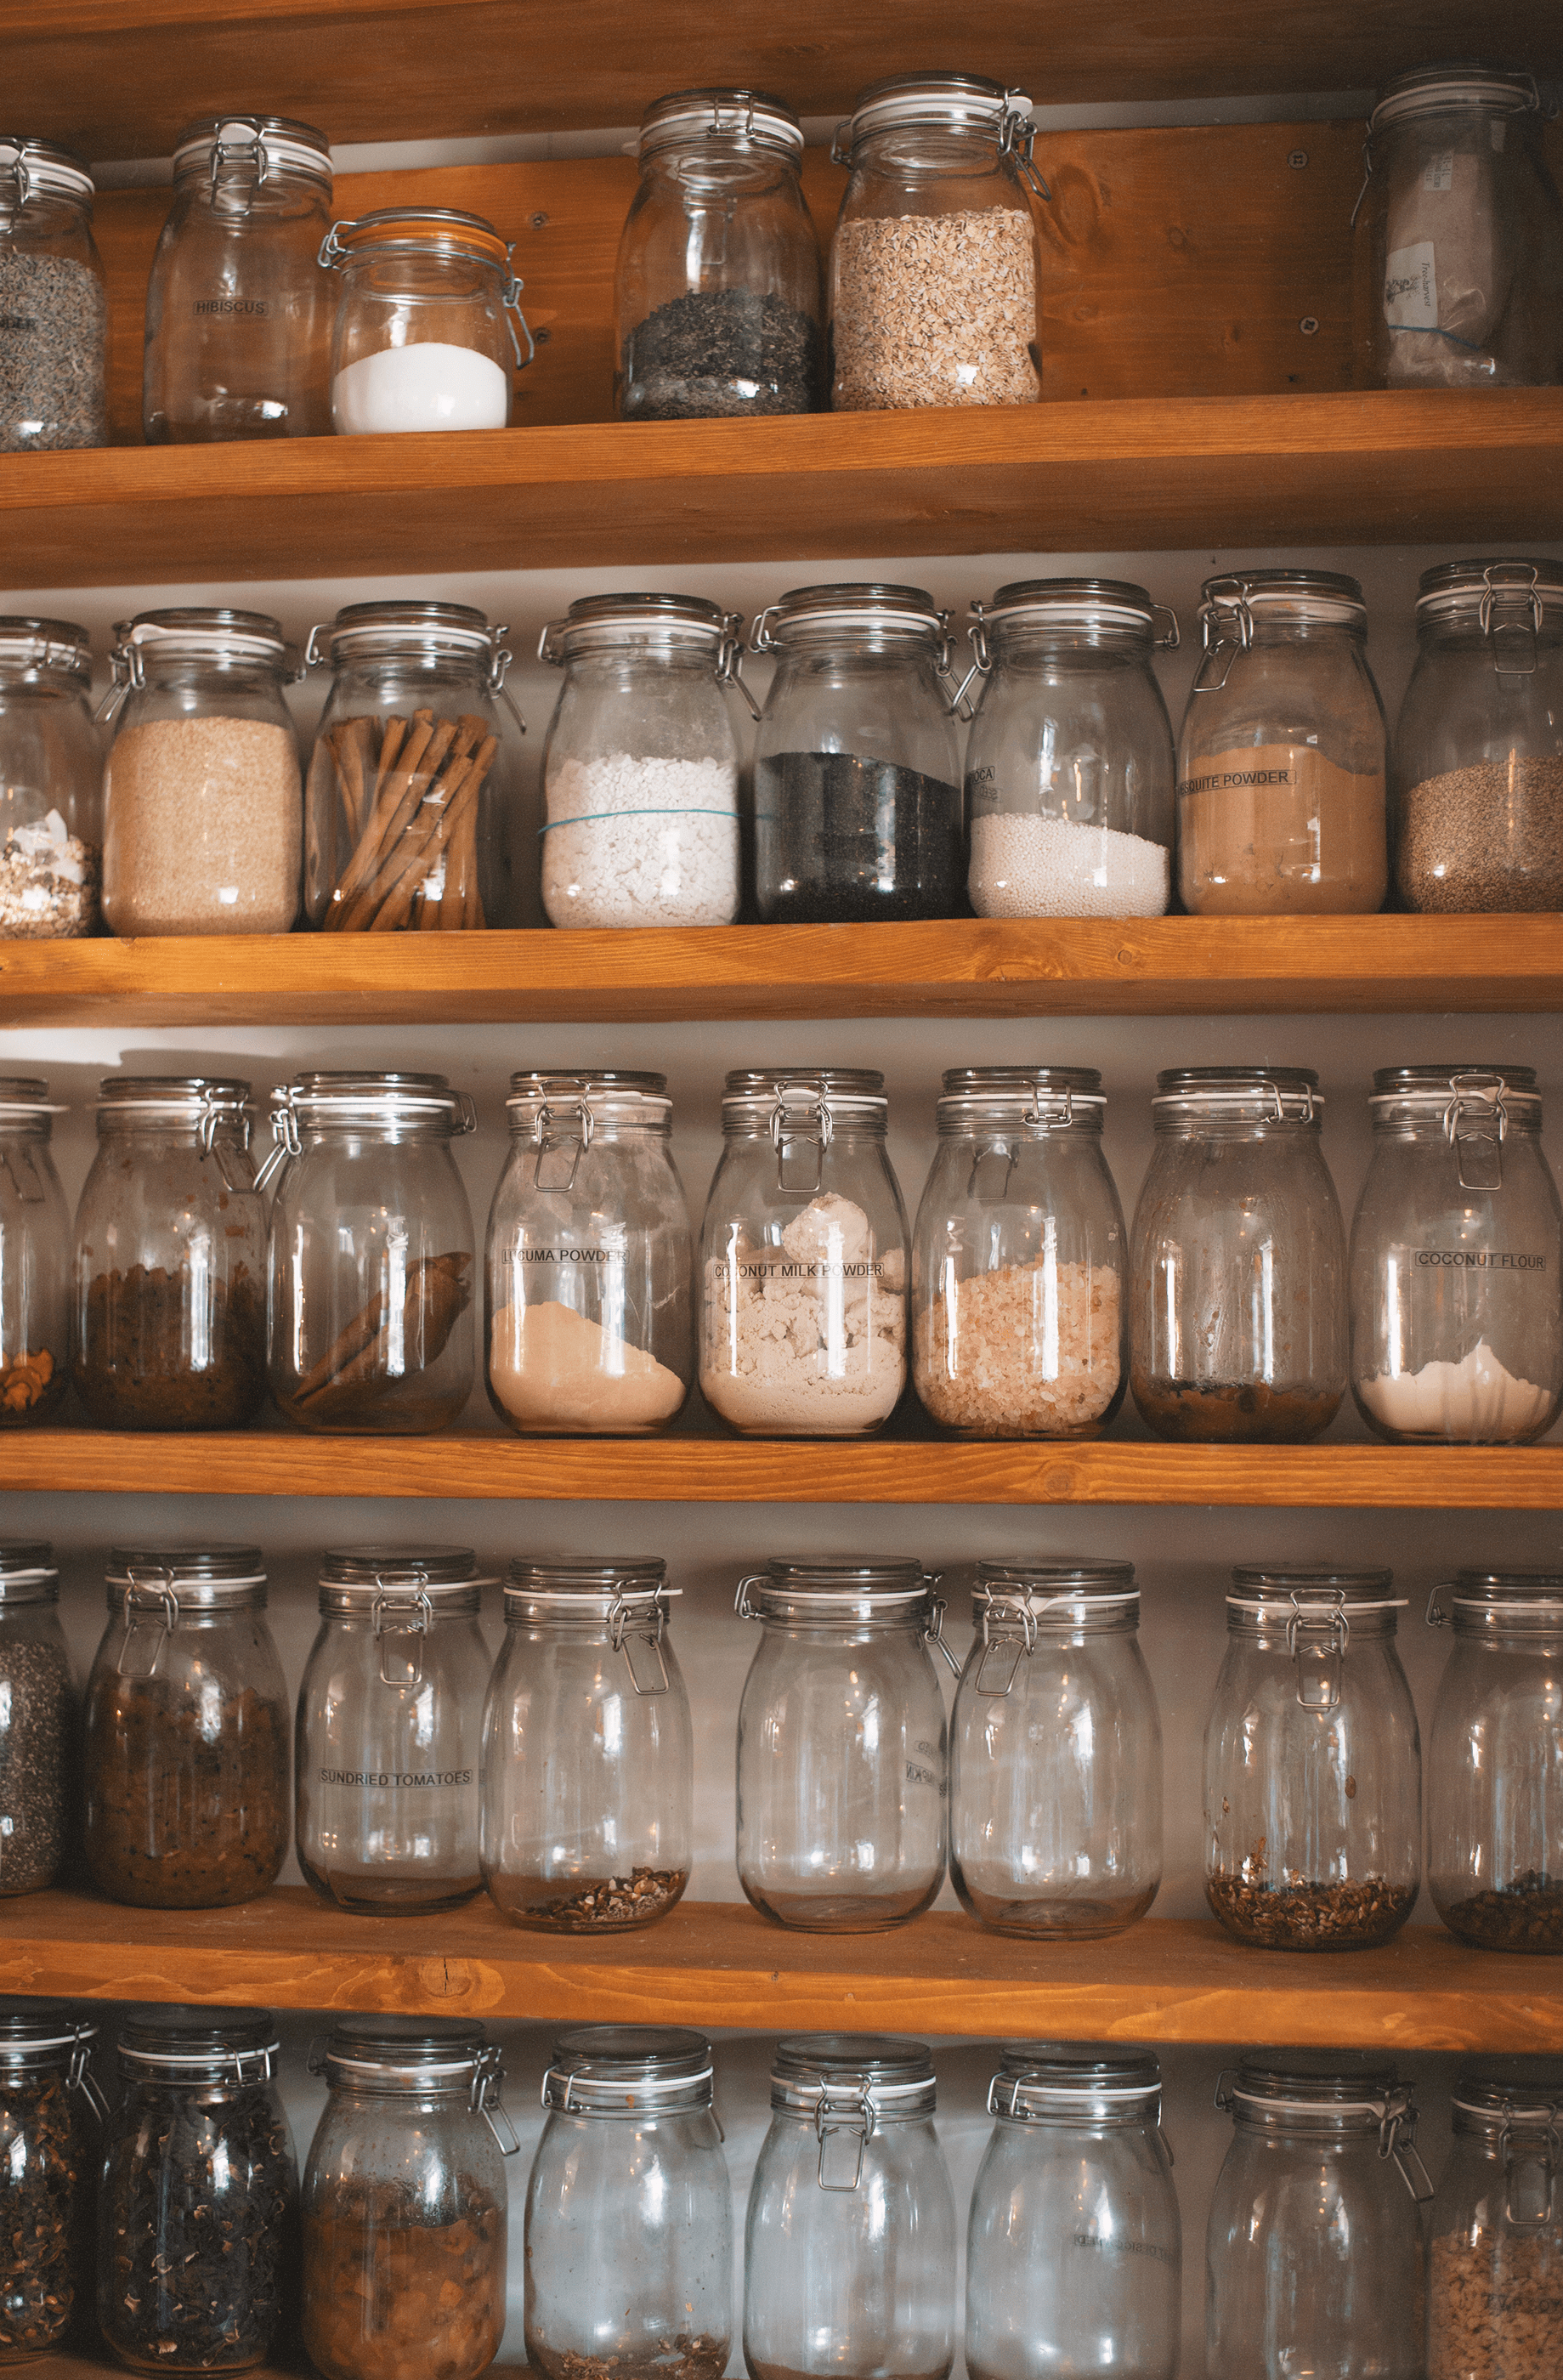 Shelving with jars full of condiments, herbs and spices